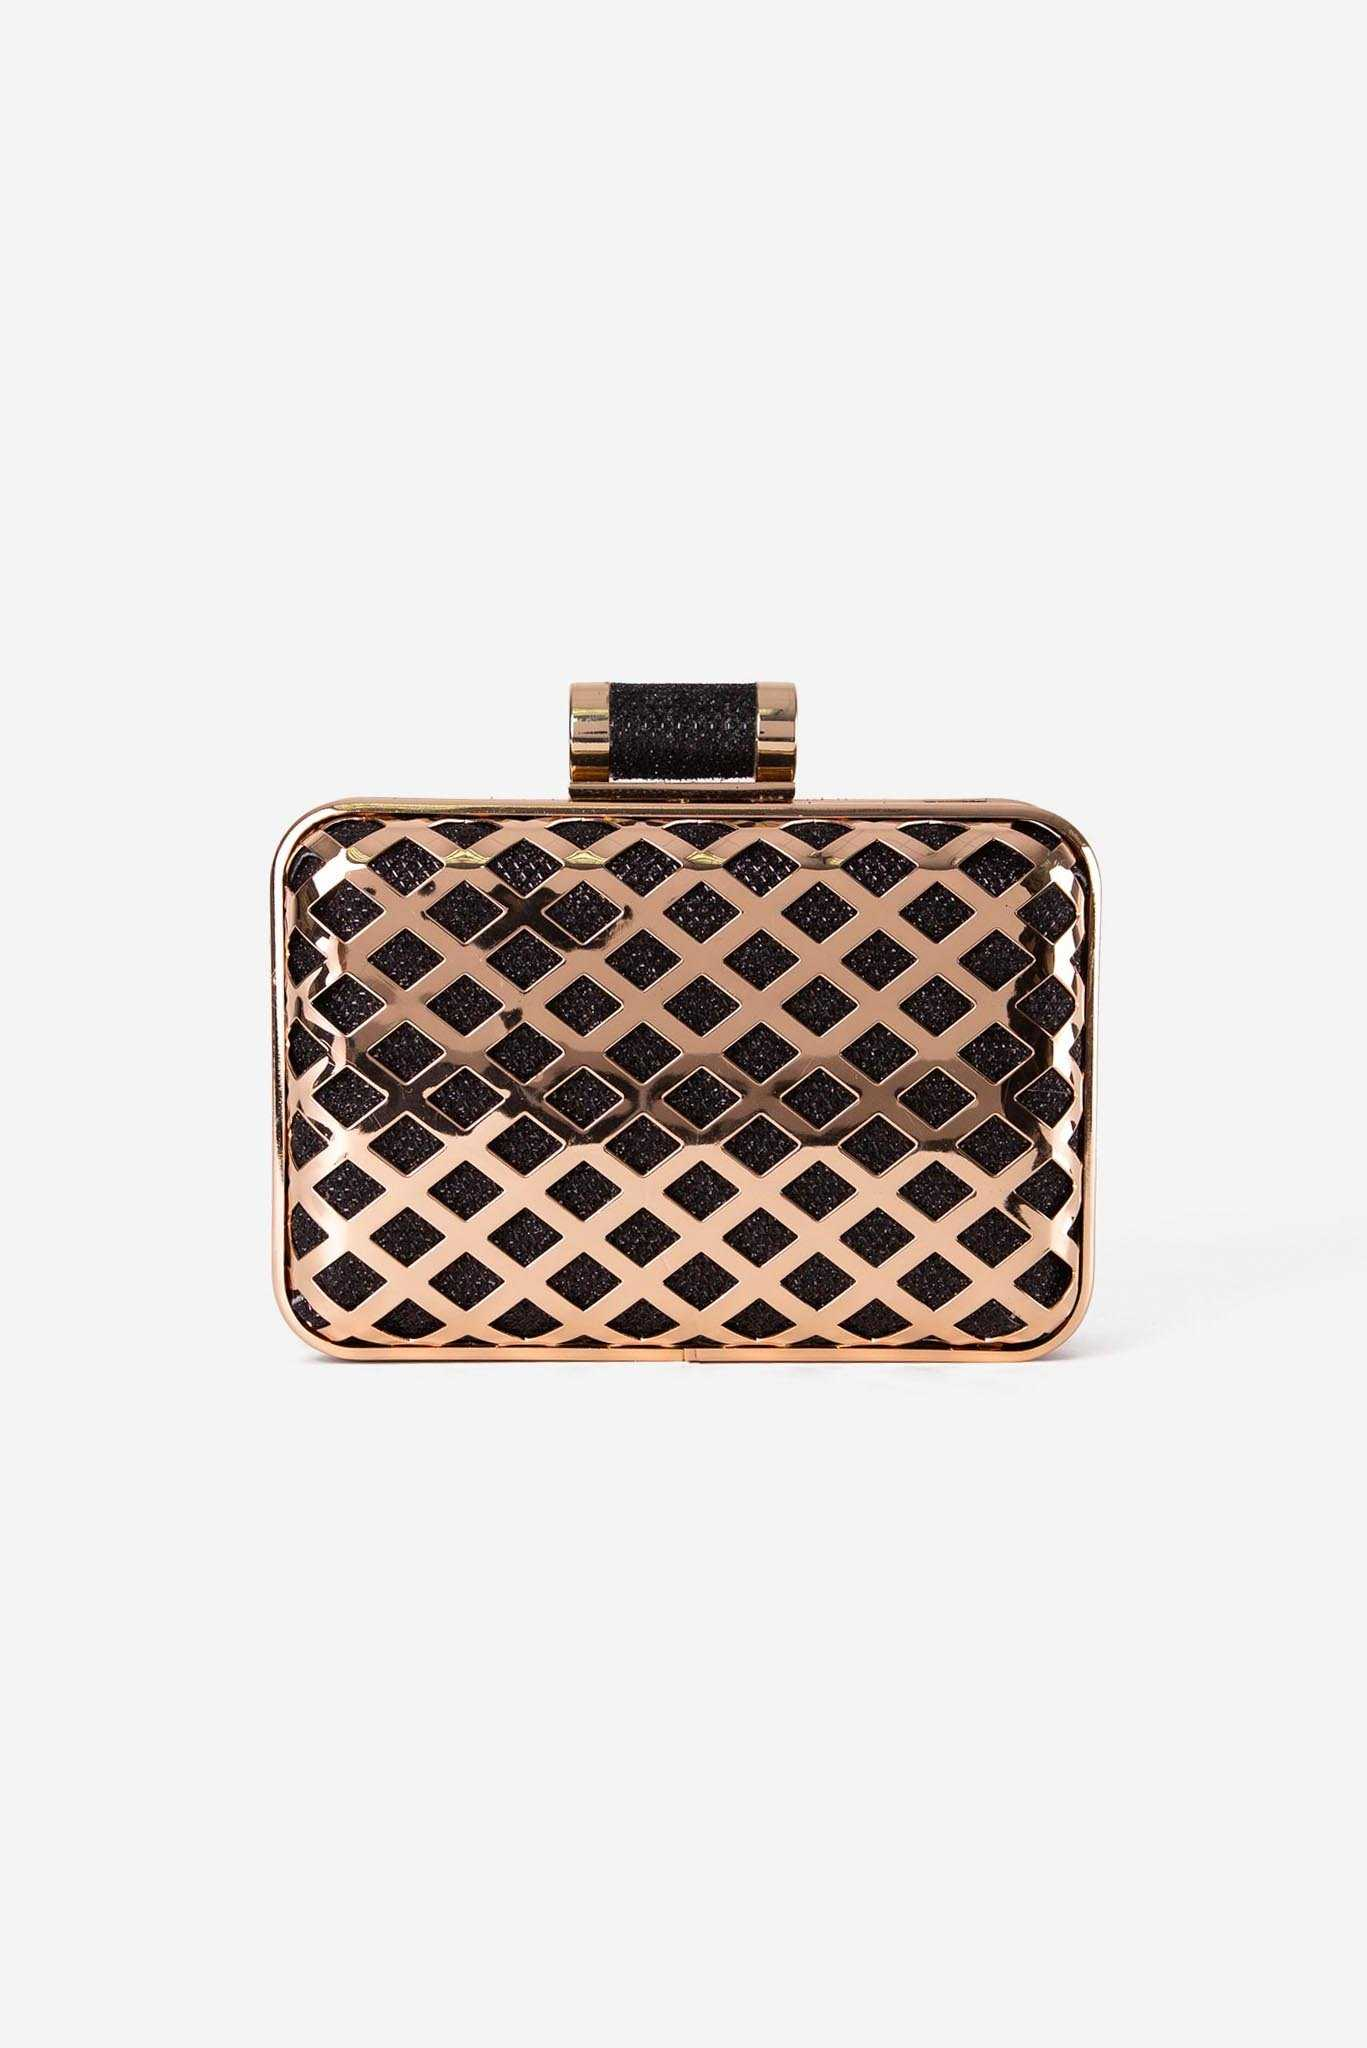 Party Mini Clutch - Black | Raw Orange